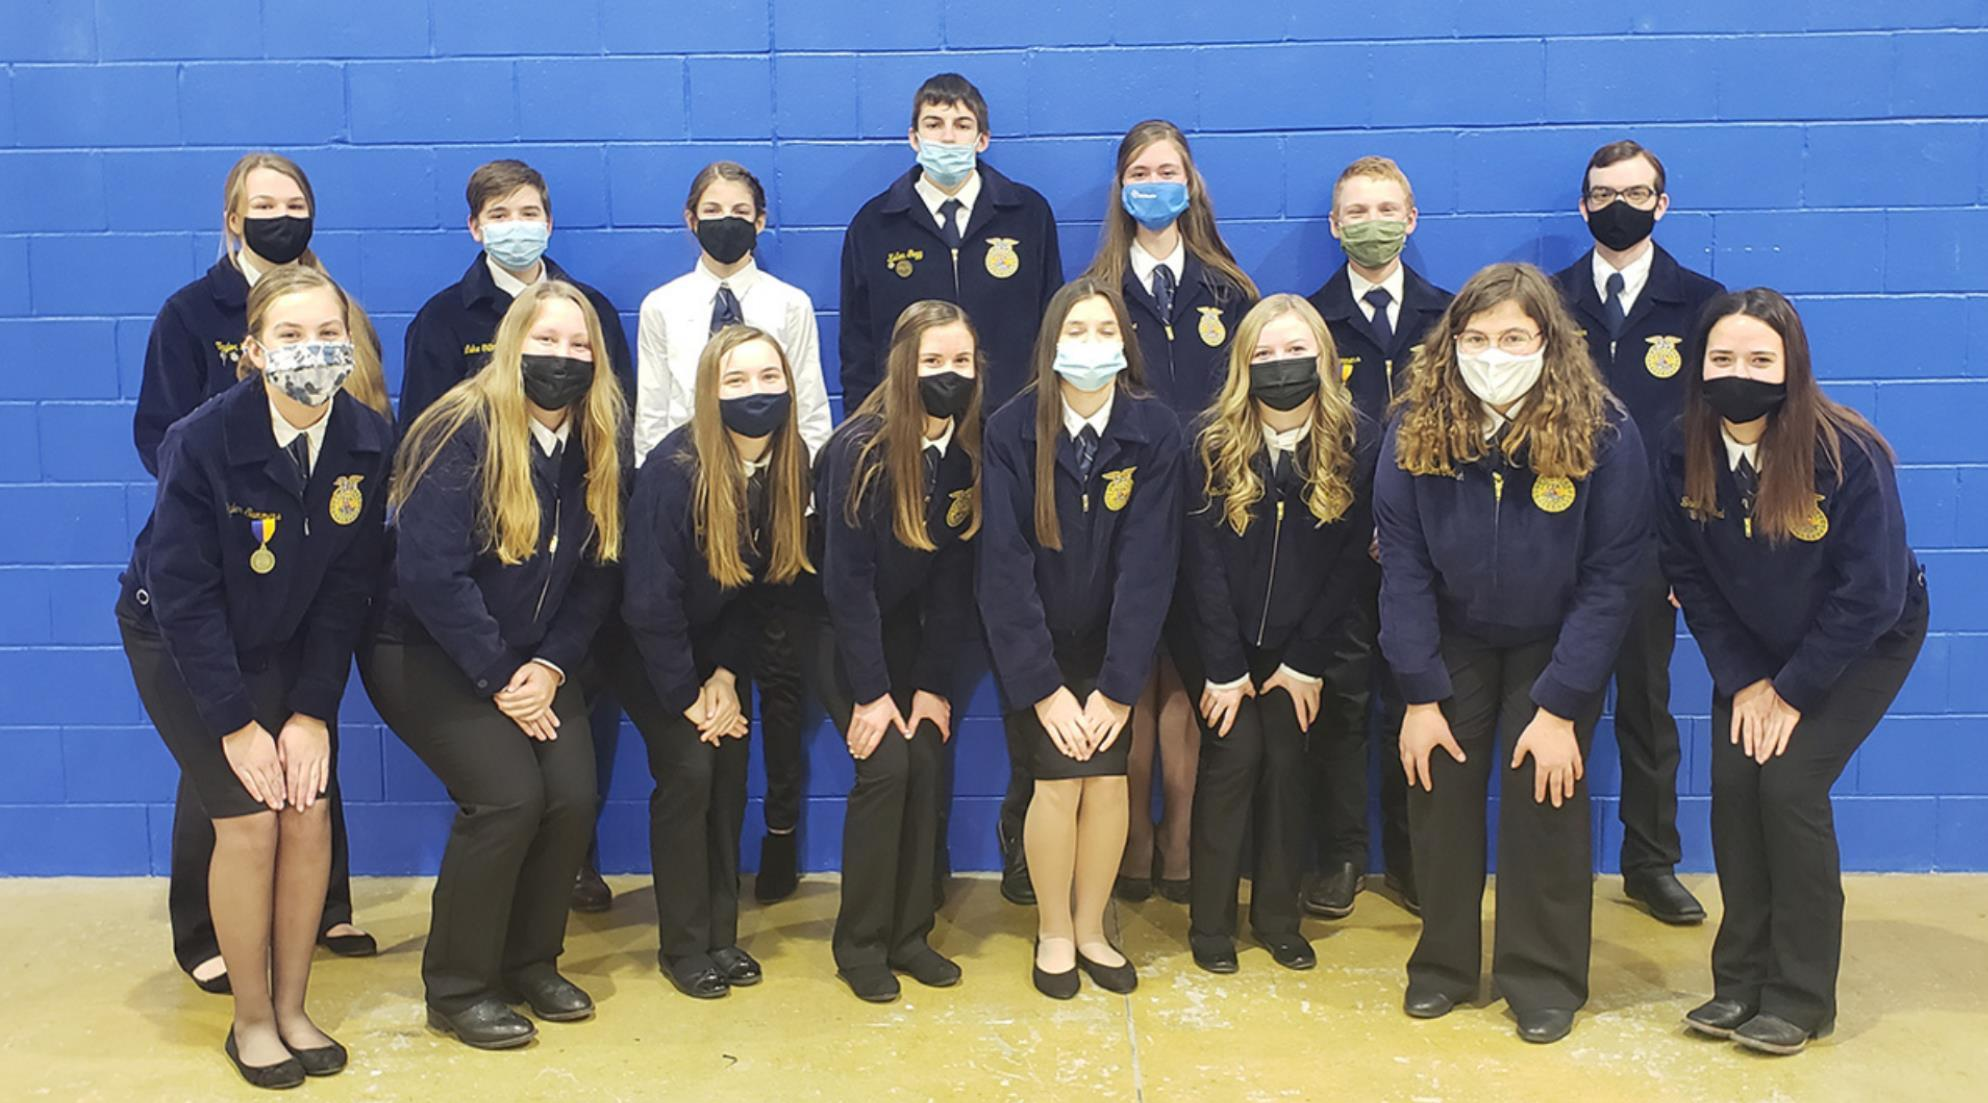 Shelton FFA members who took part in the FFA Leadership Development Events last week included, front row, left to right, Skyler Summers, Jett Reilly, Callee Carman, Justine Pope, Kaycee Tompkin, Brianna Simmons, Madison Goldfish, and Breanna Plihal; and b